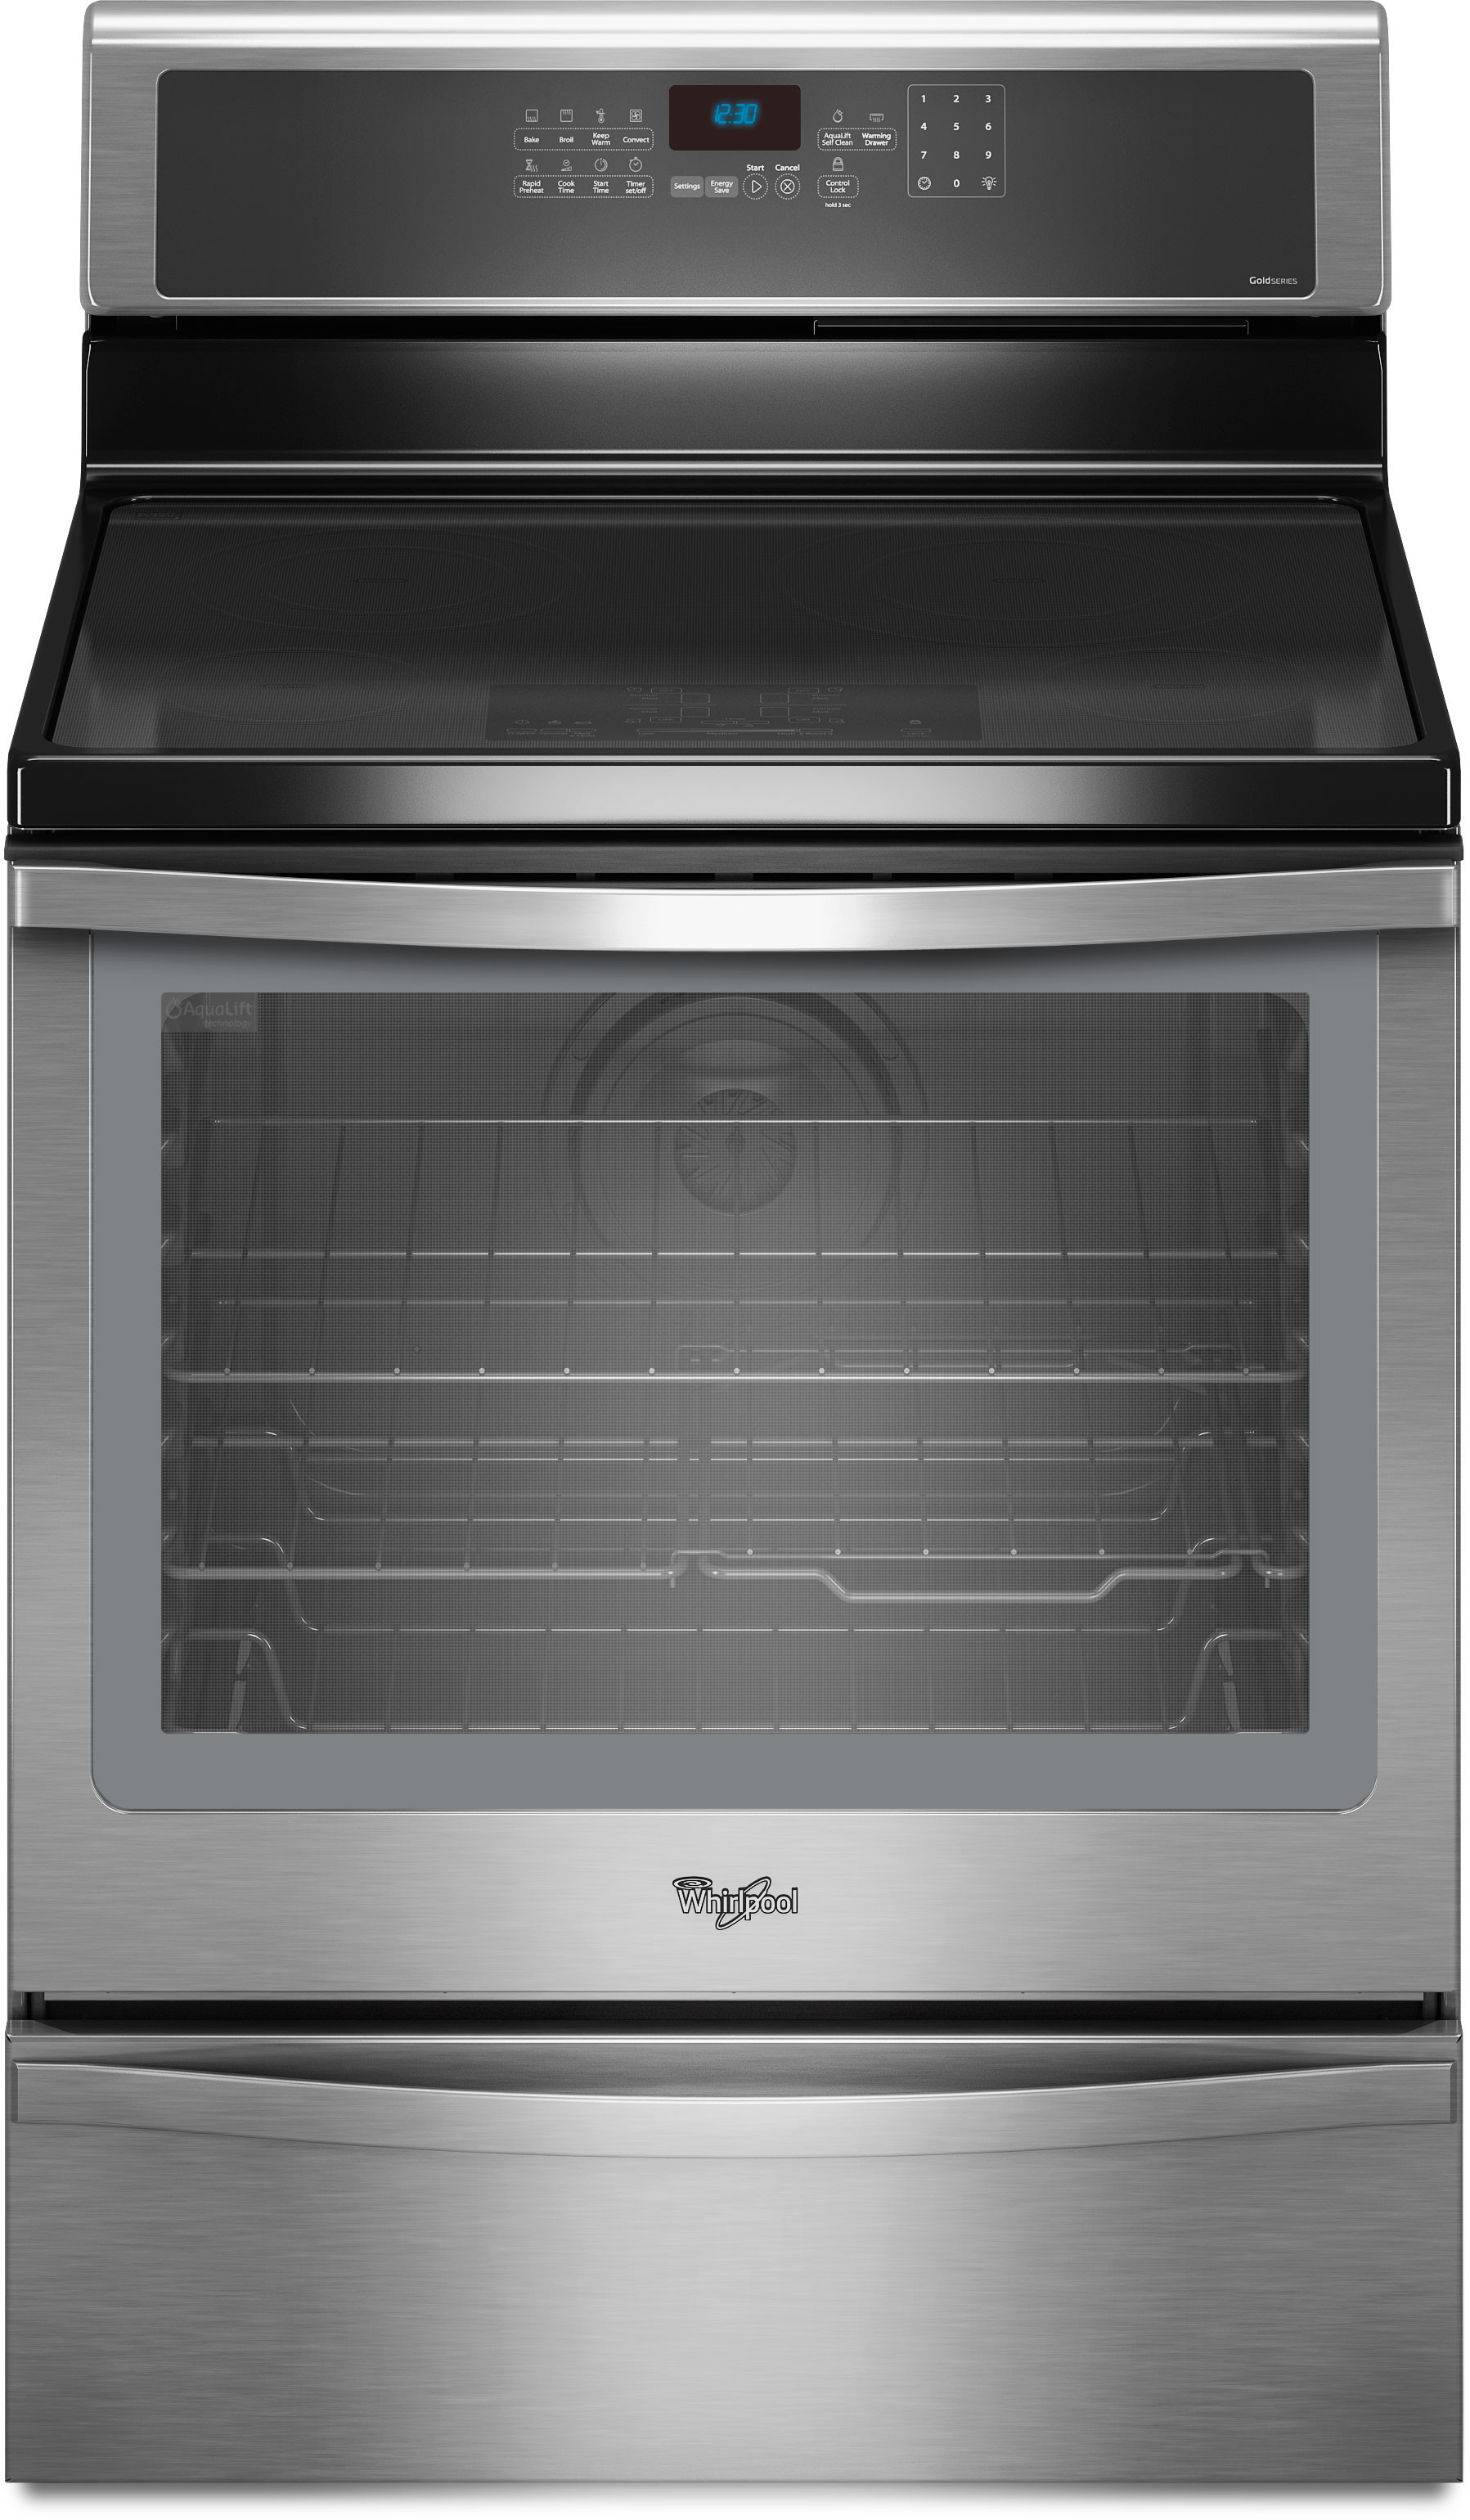 Whirlpool Wfi910h0as 30 Inch Freestanding Induction Range